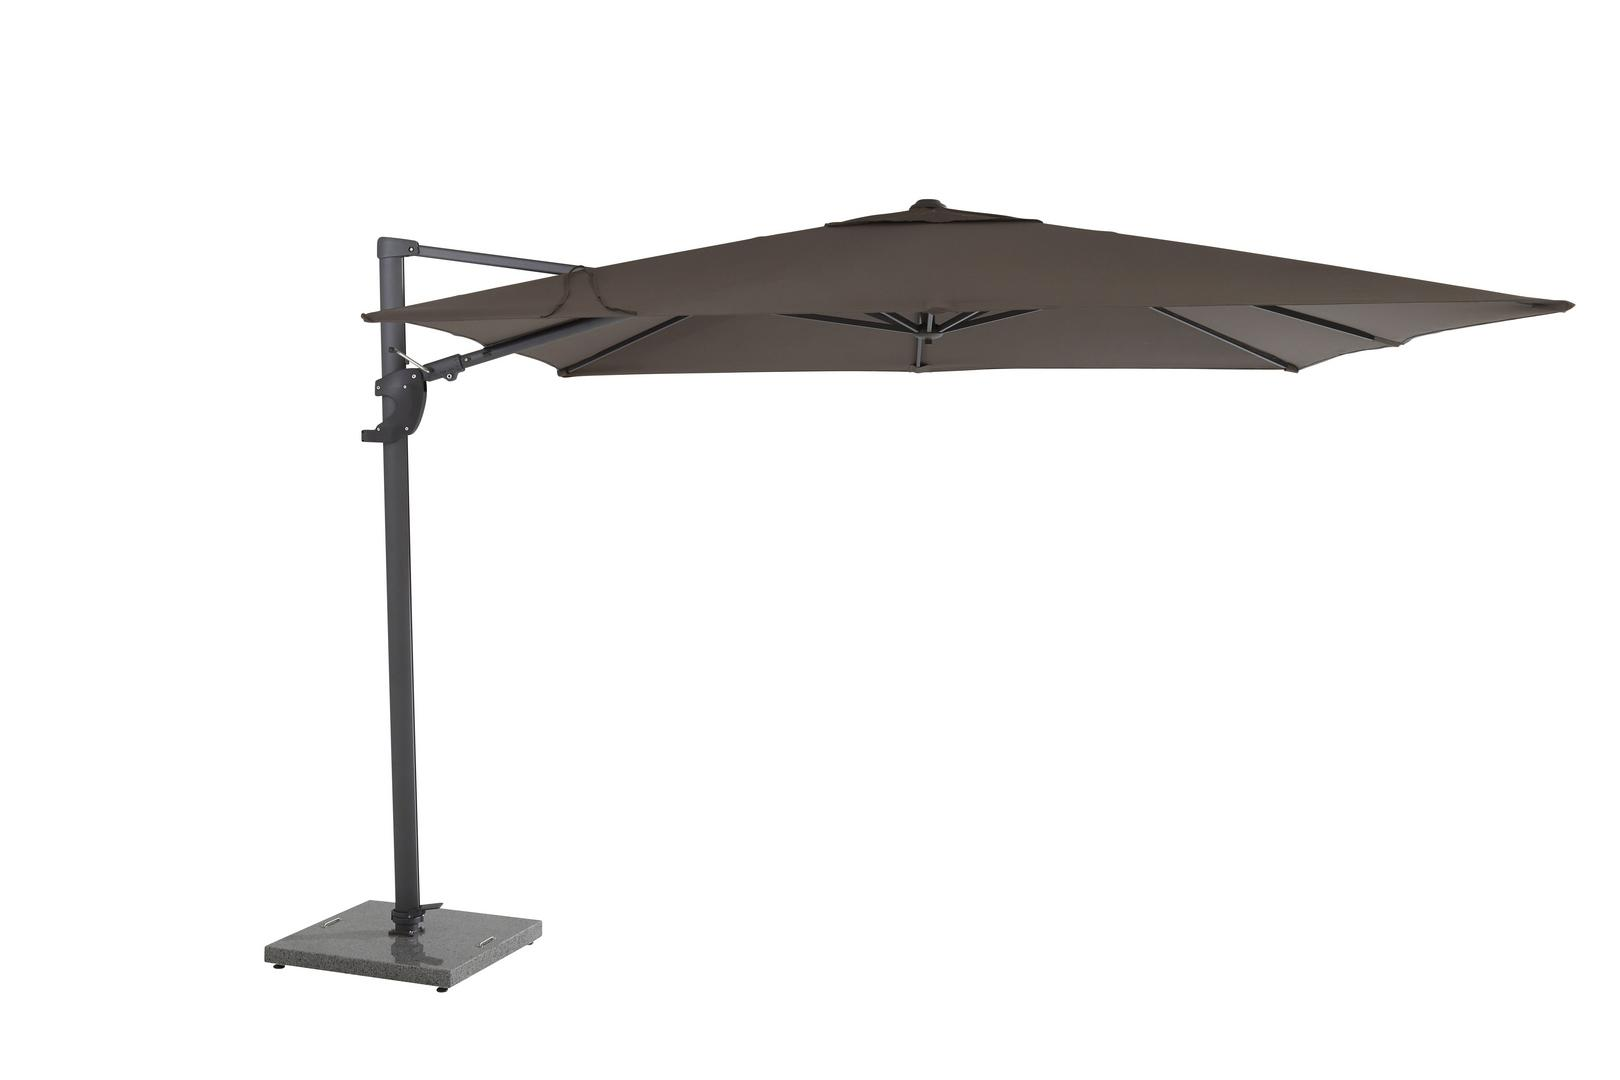 4 Seasons Outdoor Horizon Premium 3 x 3m parasol Taupe